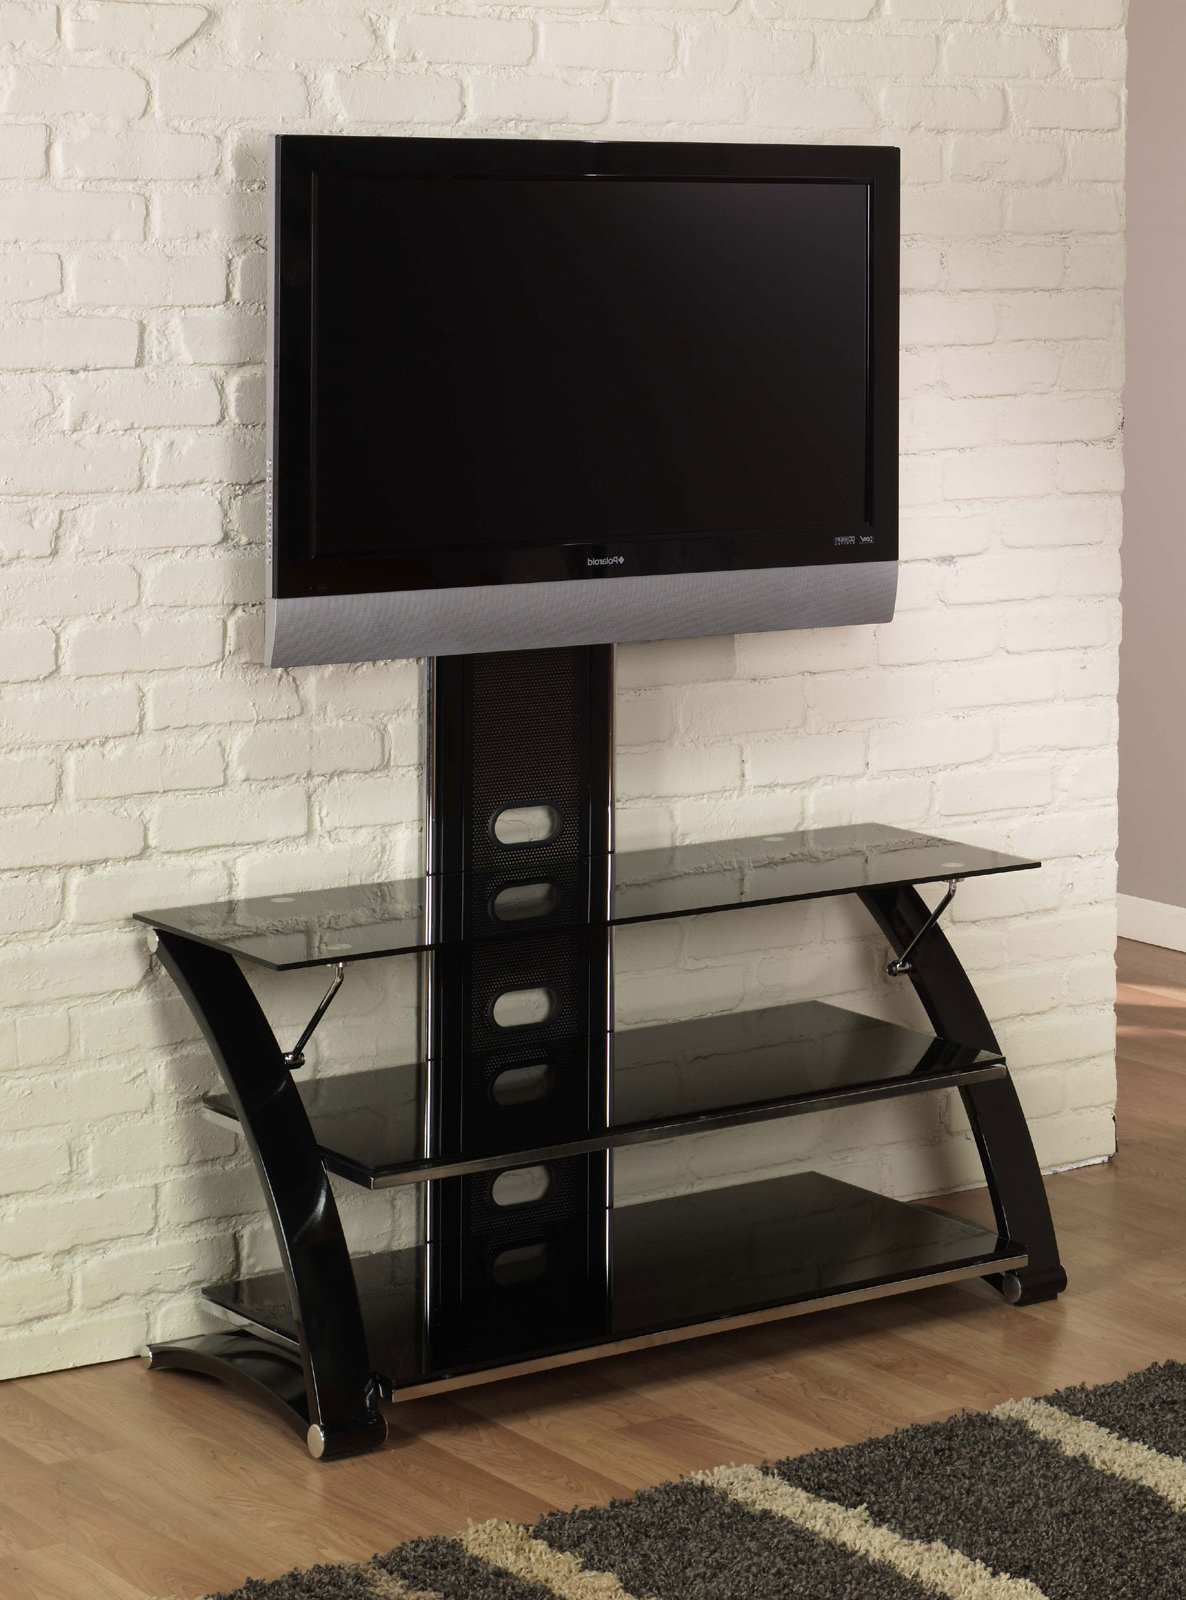 Well Liked Dark Tv Stands Within Sears Tv Stands 55 Inch Dark Stand With Drawer Espresso (View 19 of 20)